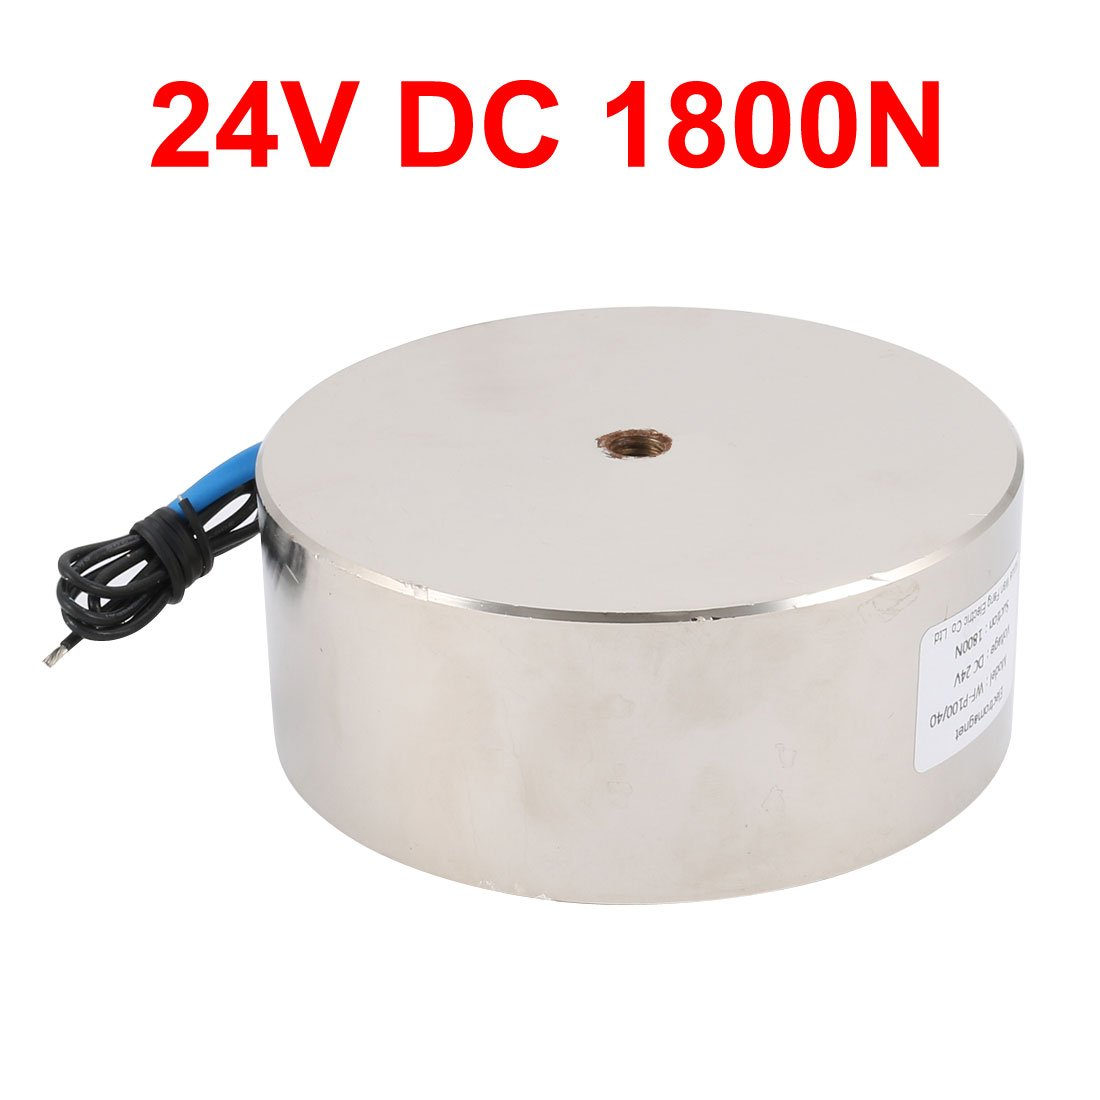 uxcell/® 24V DC 1800N Electric Lifting Magnet Electromagnet Solenoid Lift Holding